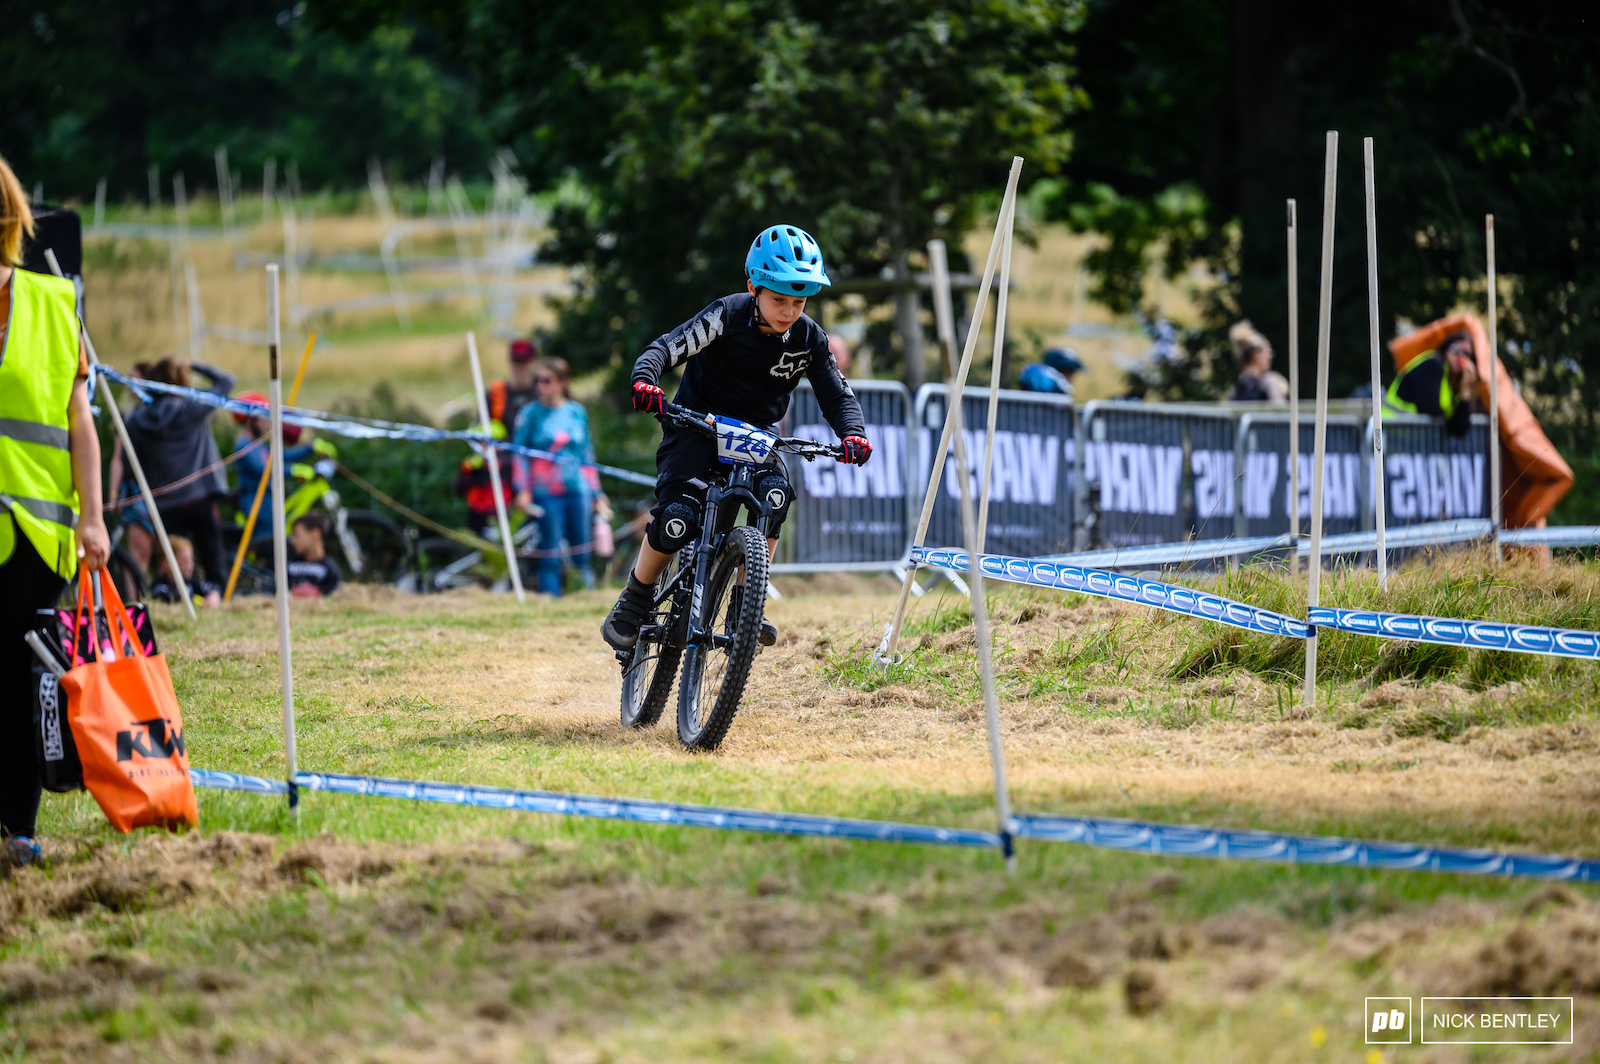 The Pinkbike Rippers Downhill started at the Bombhole on the adult s course allowing the kids to get a taste of what their parents raced on